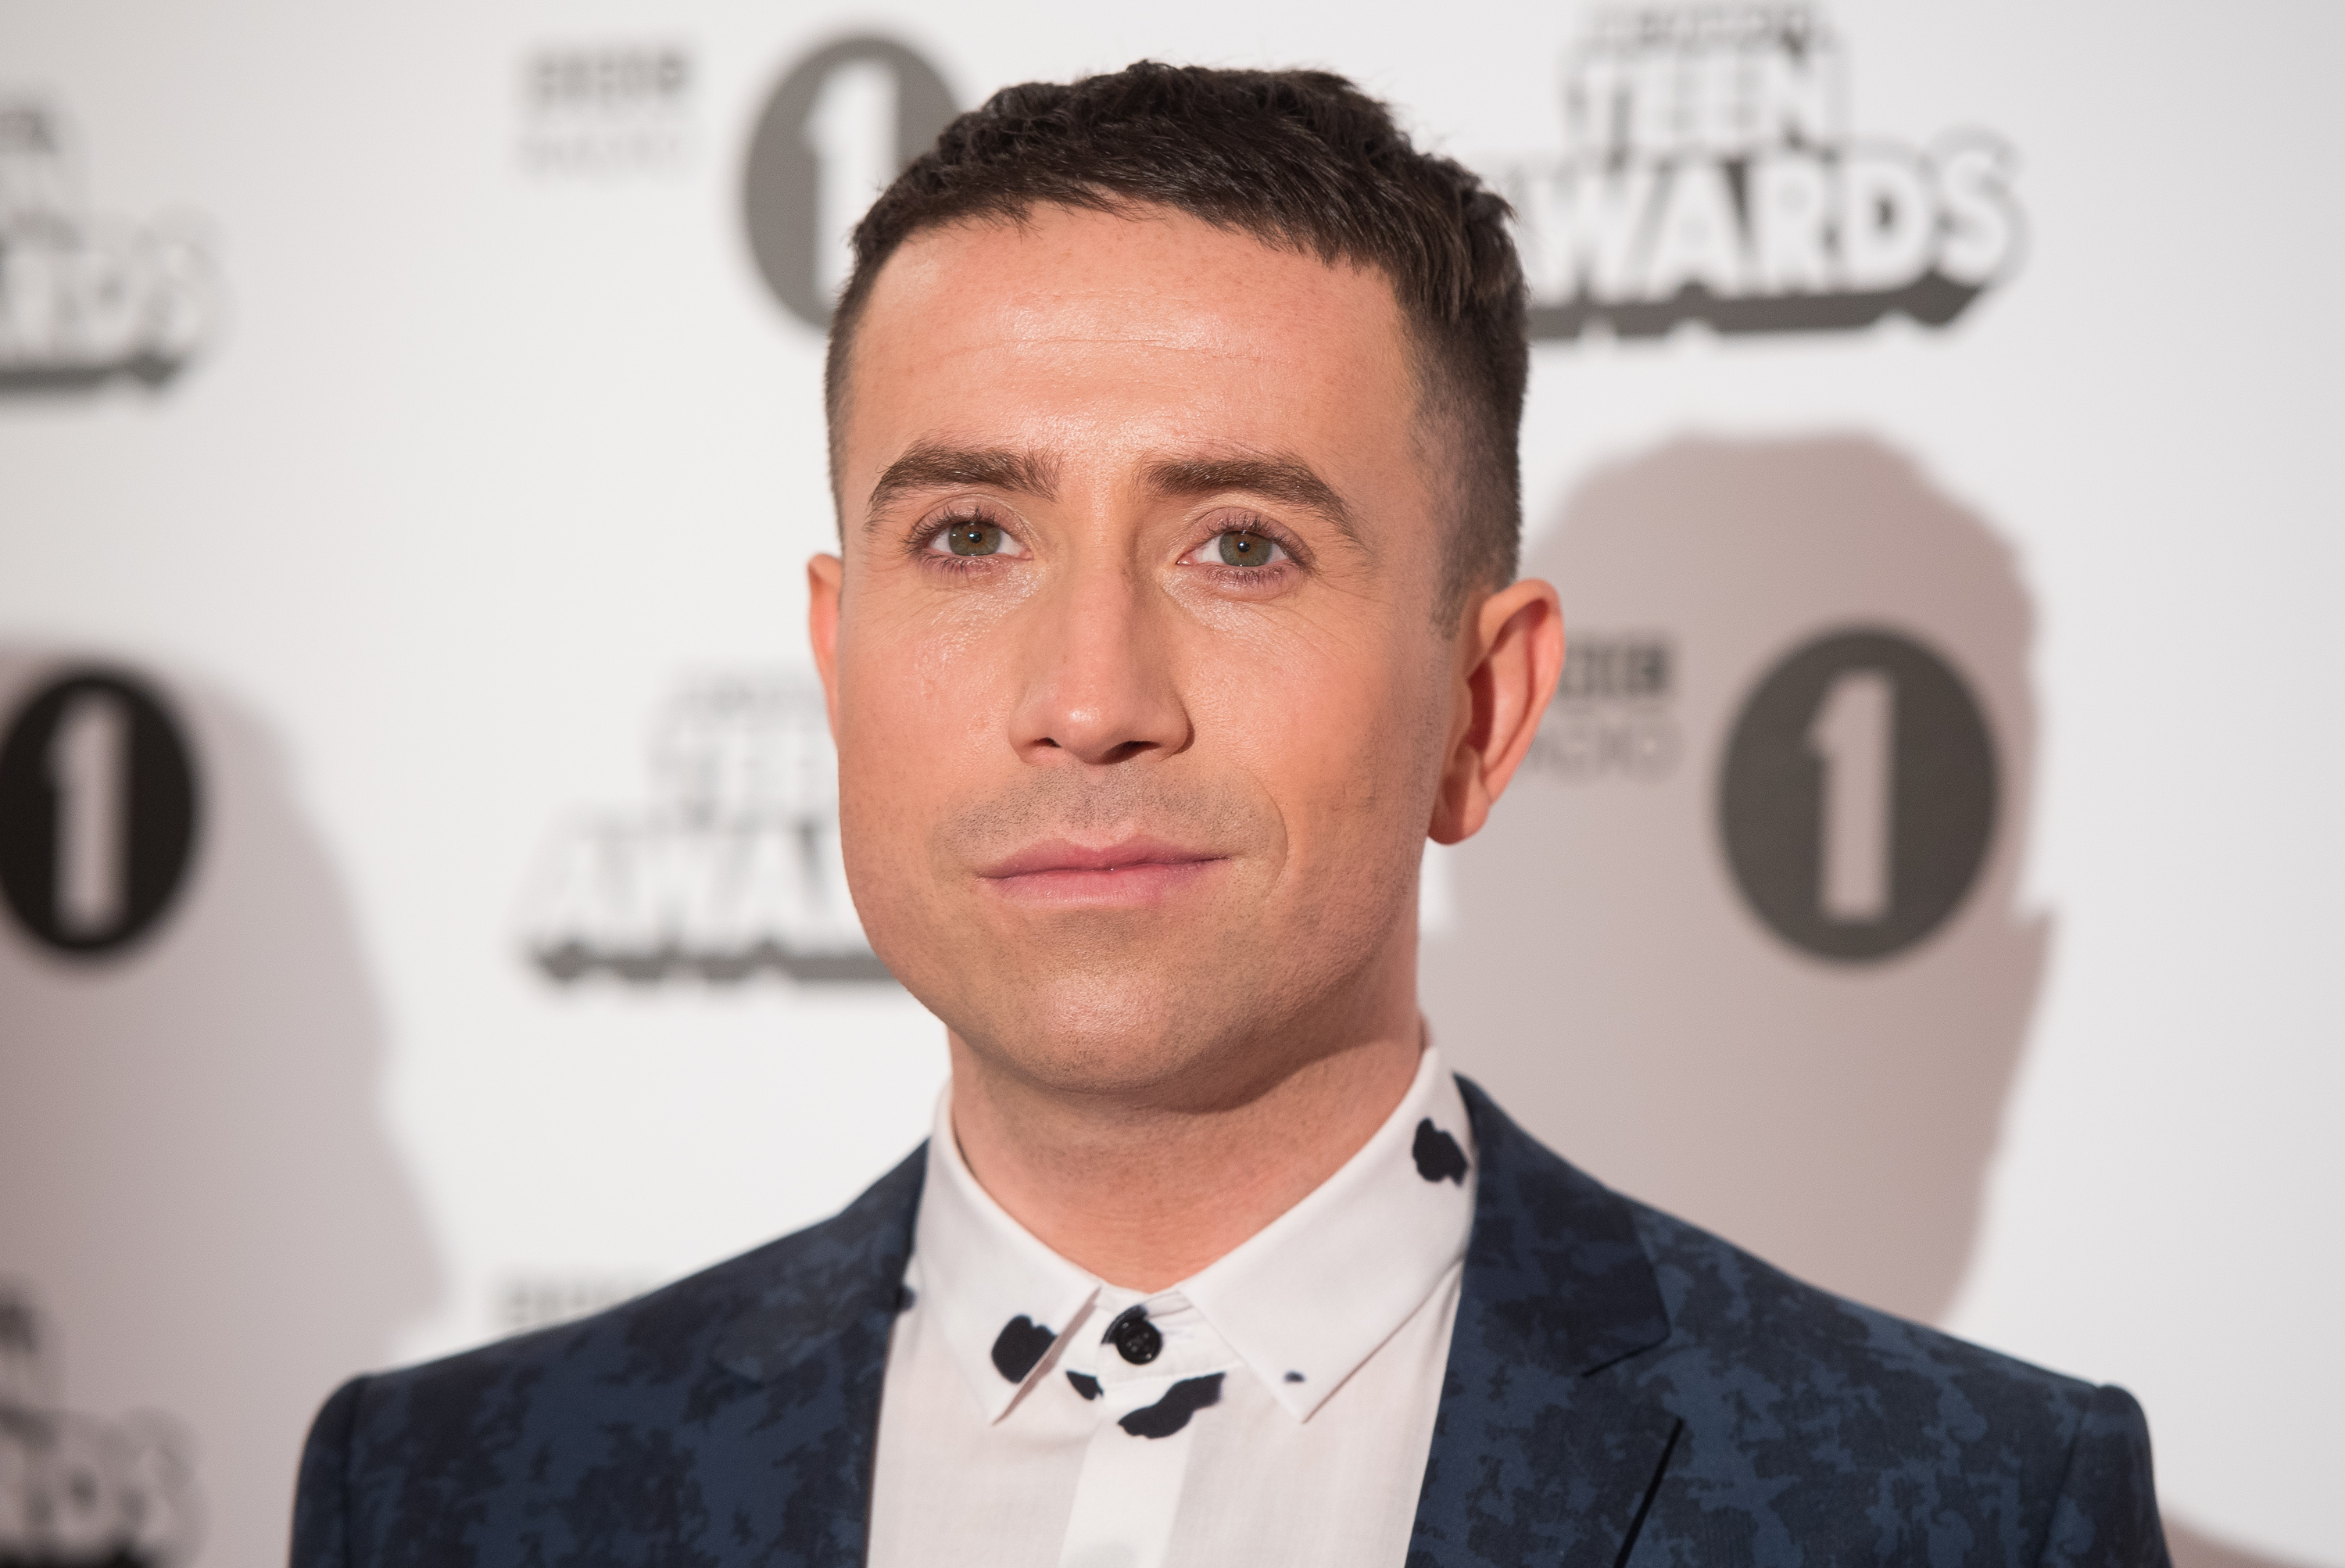 Radio 1's Nick Grimshaw admits to feeling broody and wanting a 'Gayby'